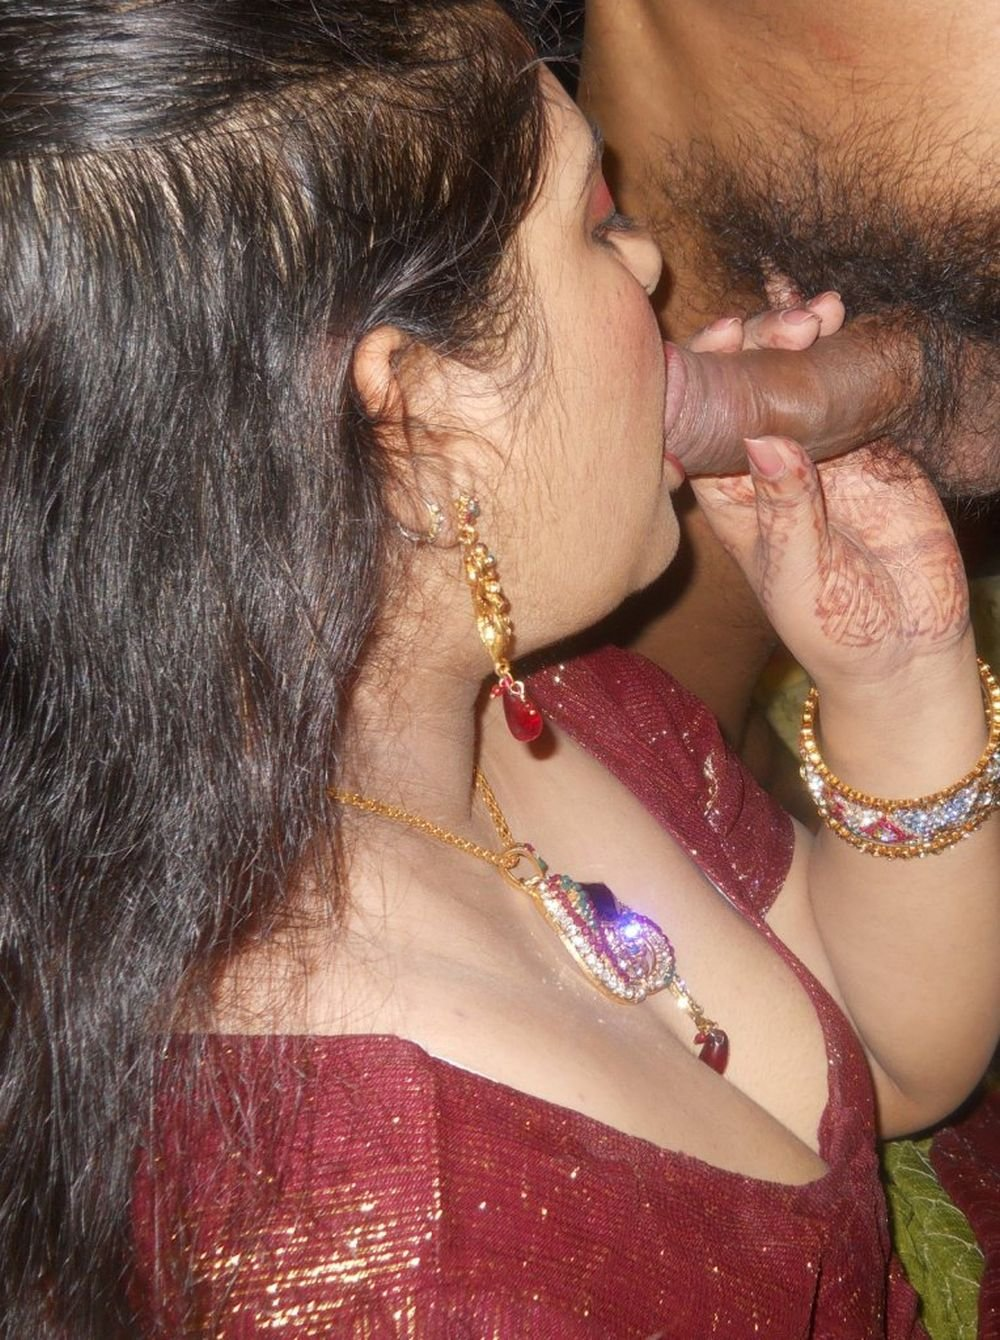 Hot Hema Aunty Romance With Neighbor